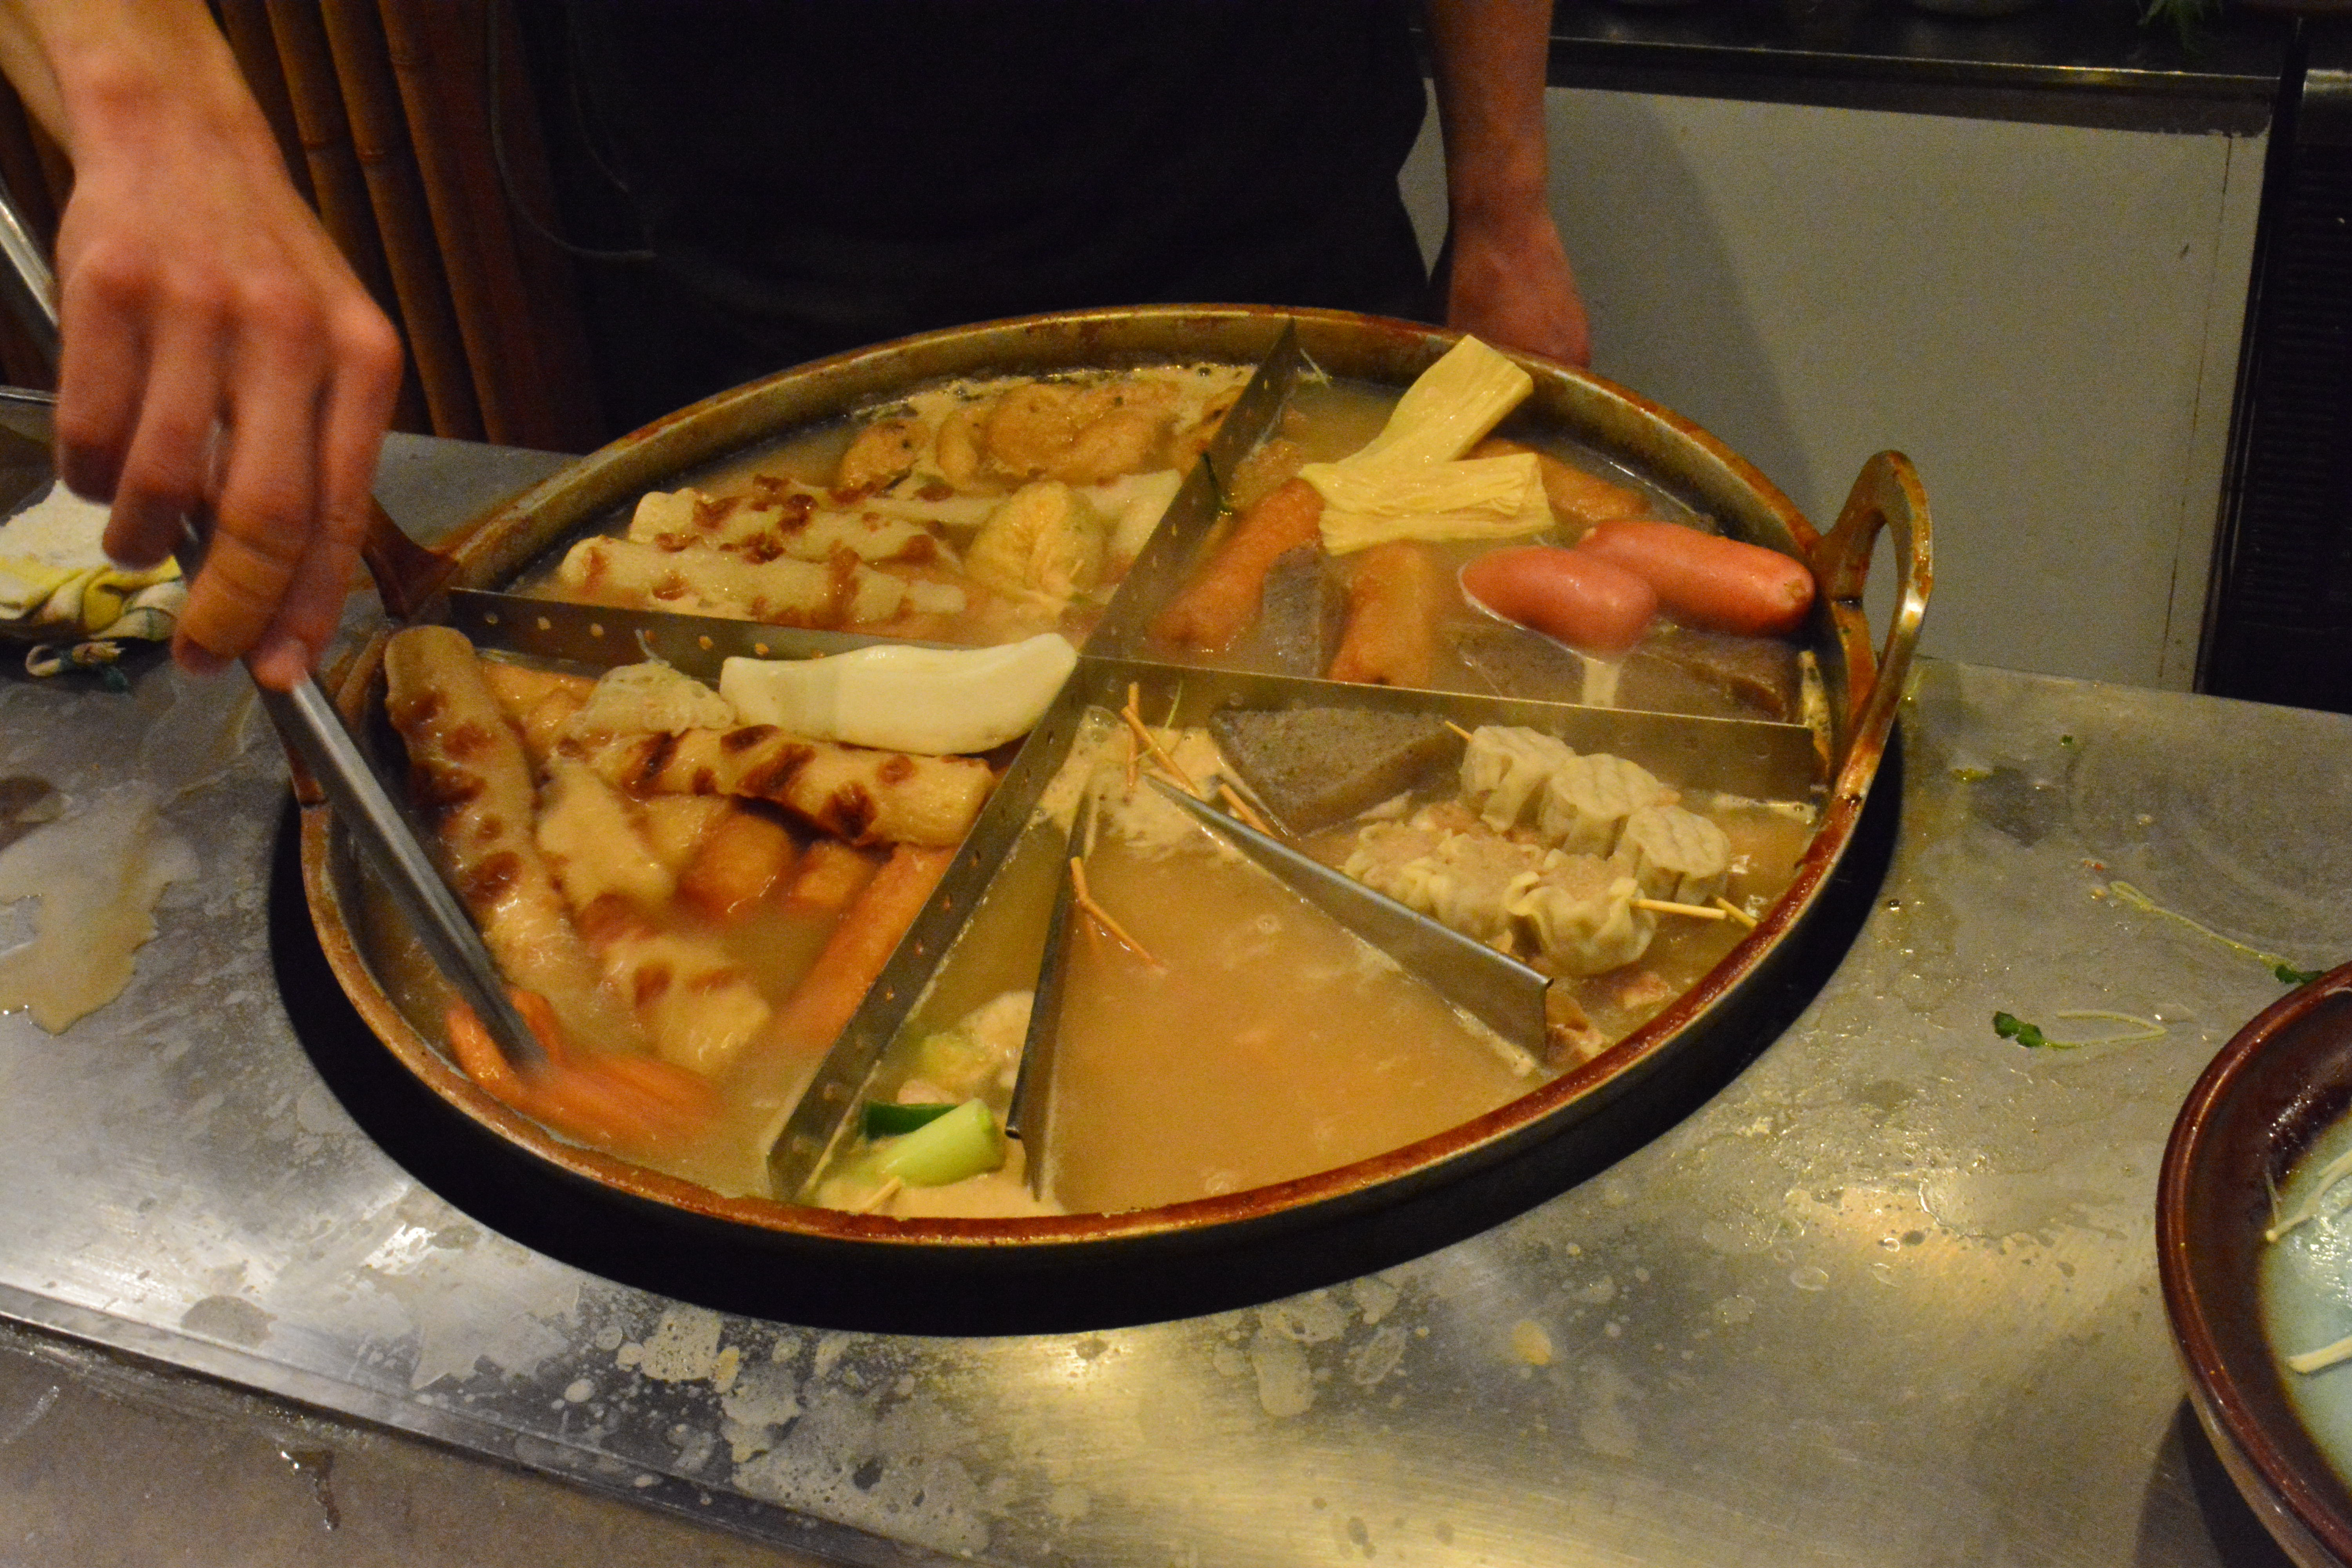 Winter's cauldron: The master at Hanakujira tends selections of oden, a year-round dish similar to stew that is best served with cold weather. | JJ O'DONOGHUE